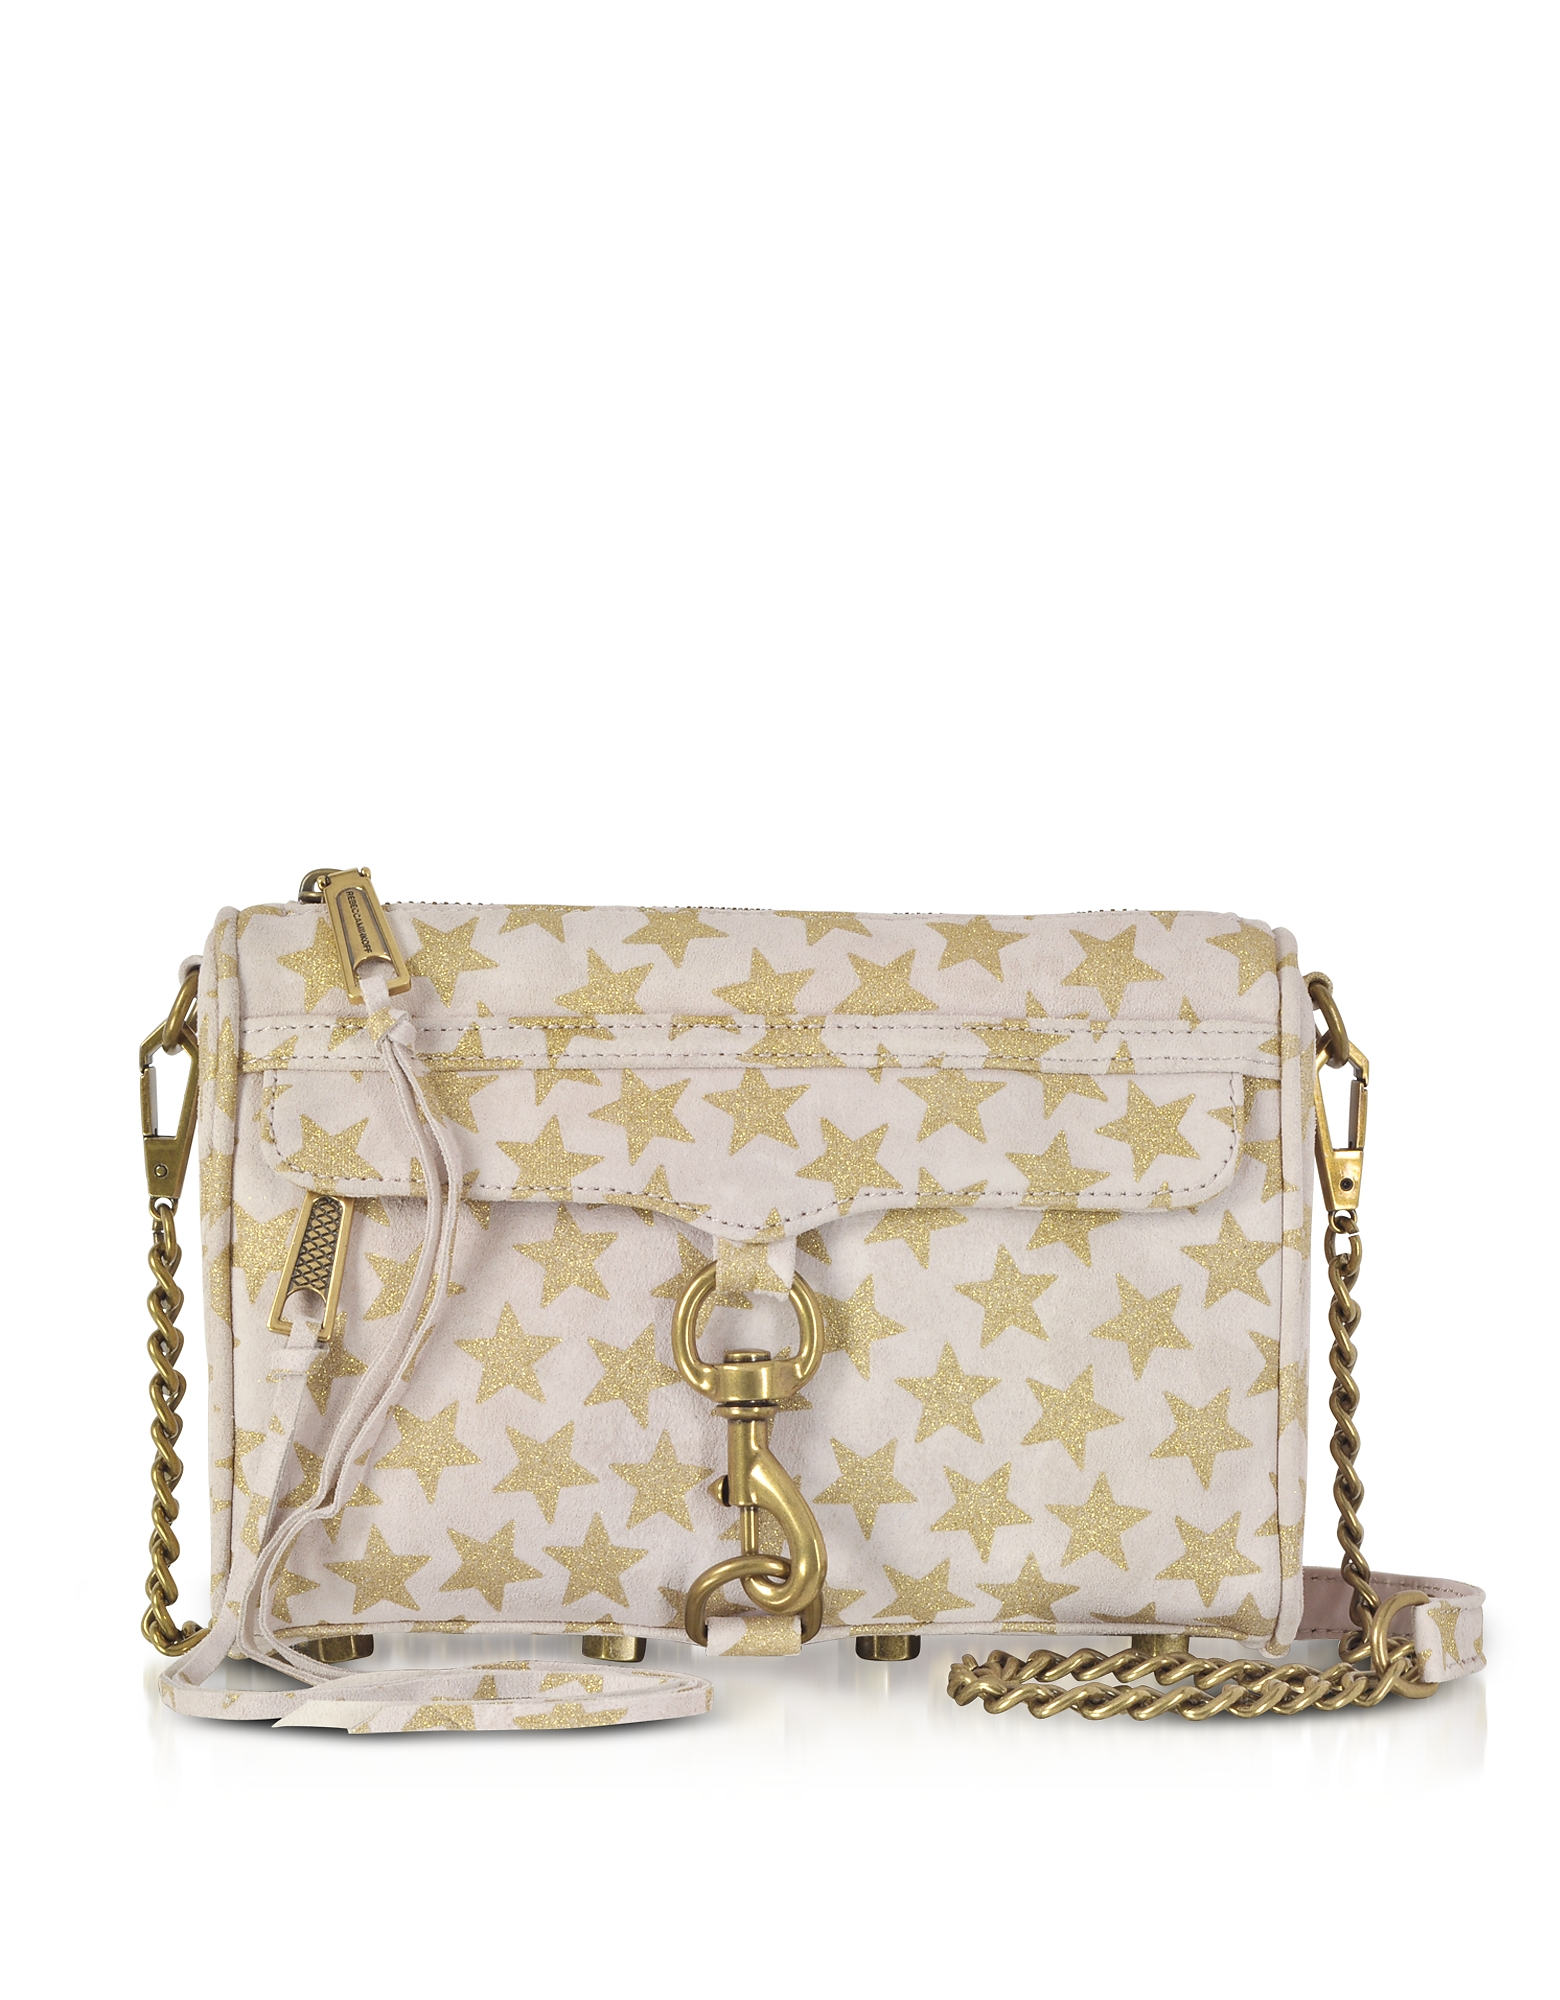 Rebecca Minkoff Handbags, Nude and Golden Stars Mini MAC Clutch/Shoudler Bag